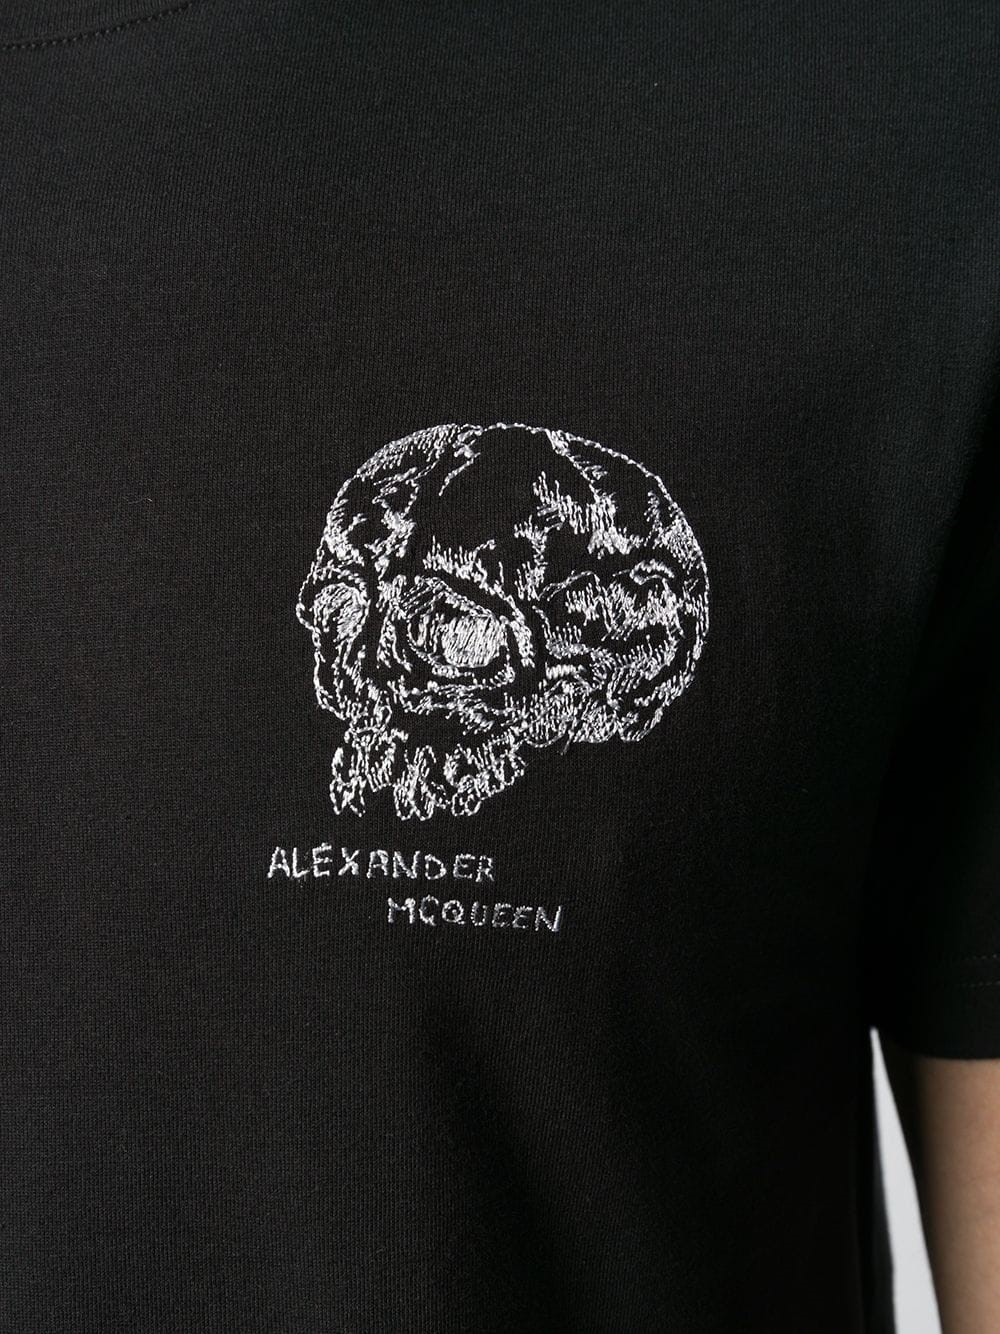 ef36ed7d alexander mcqueen SKULL T-SHIRT available on montiboutique.com - 28195